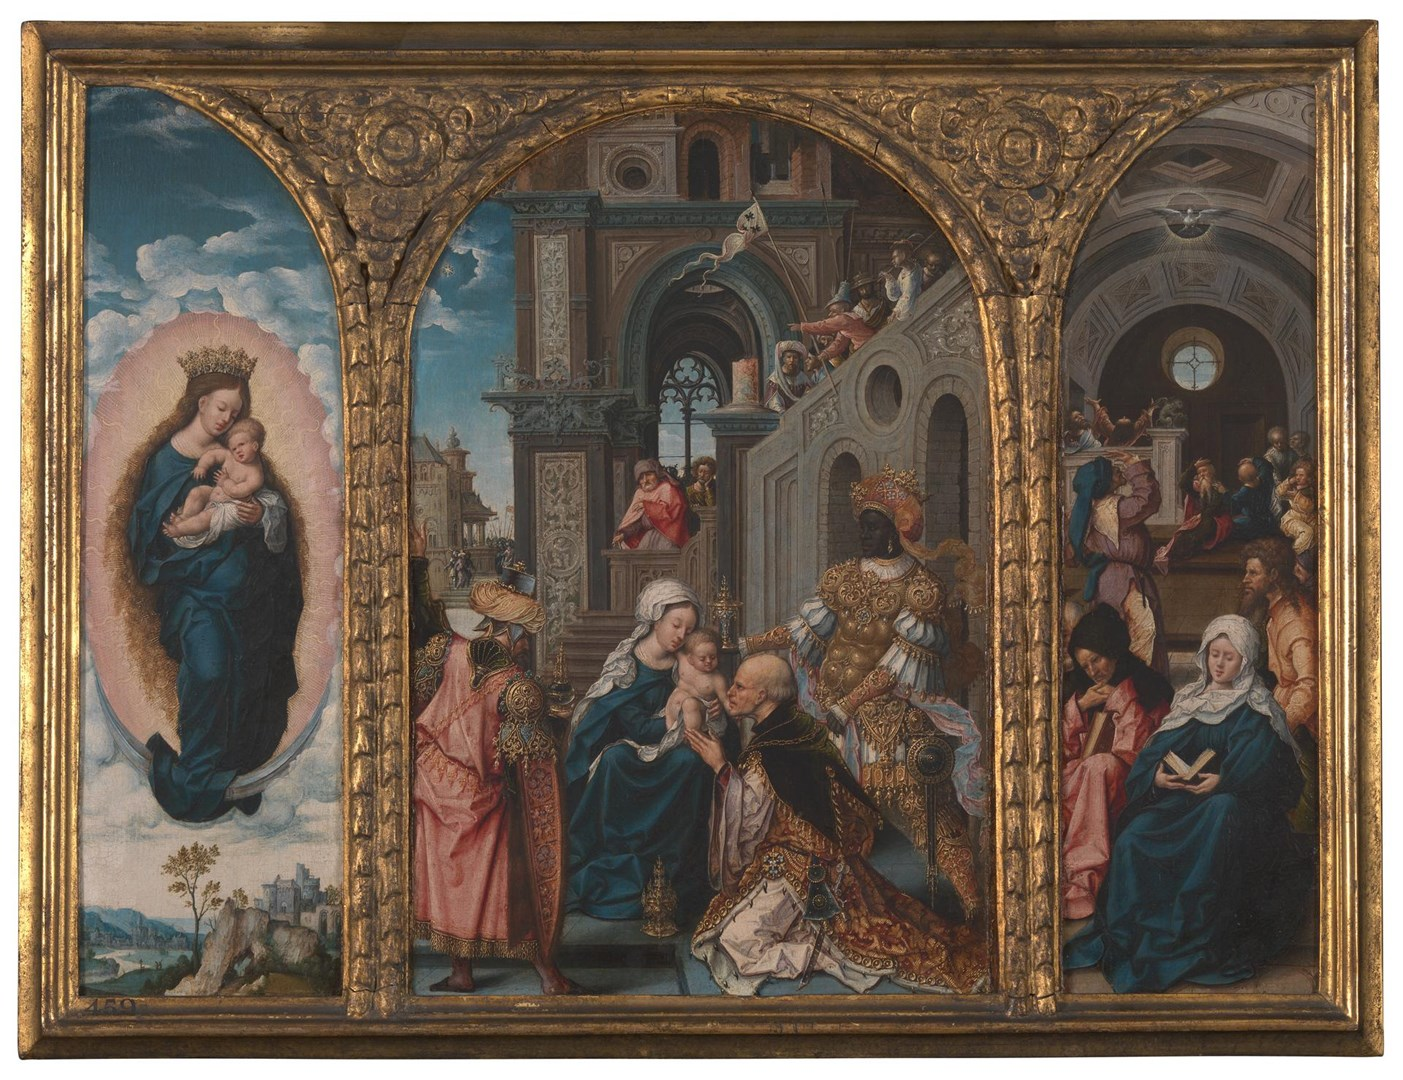 The Adoration of the Kings by Circle of Jan Gossaert (Jean Gossart)